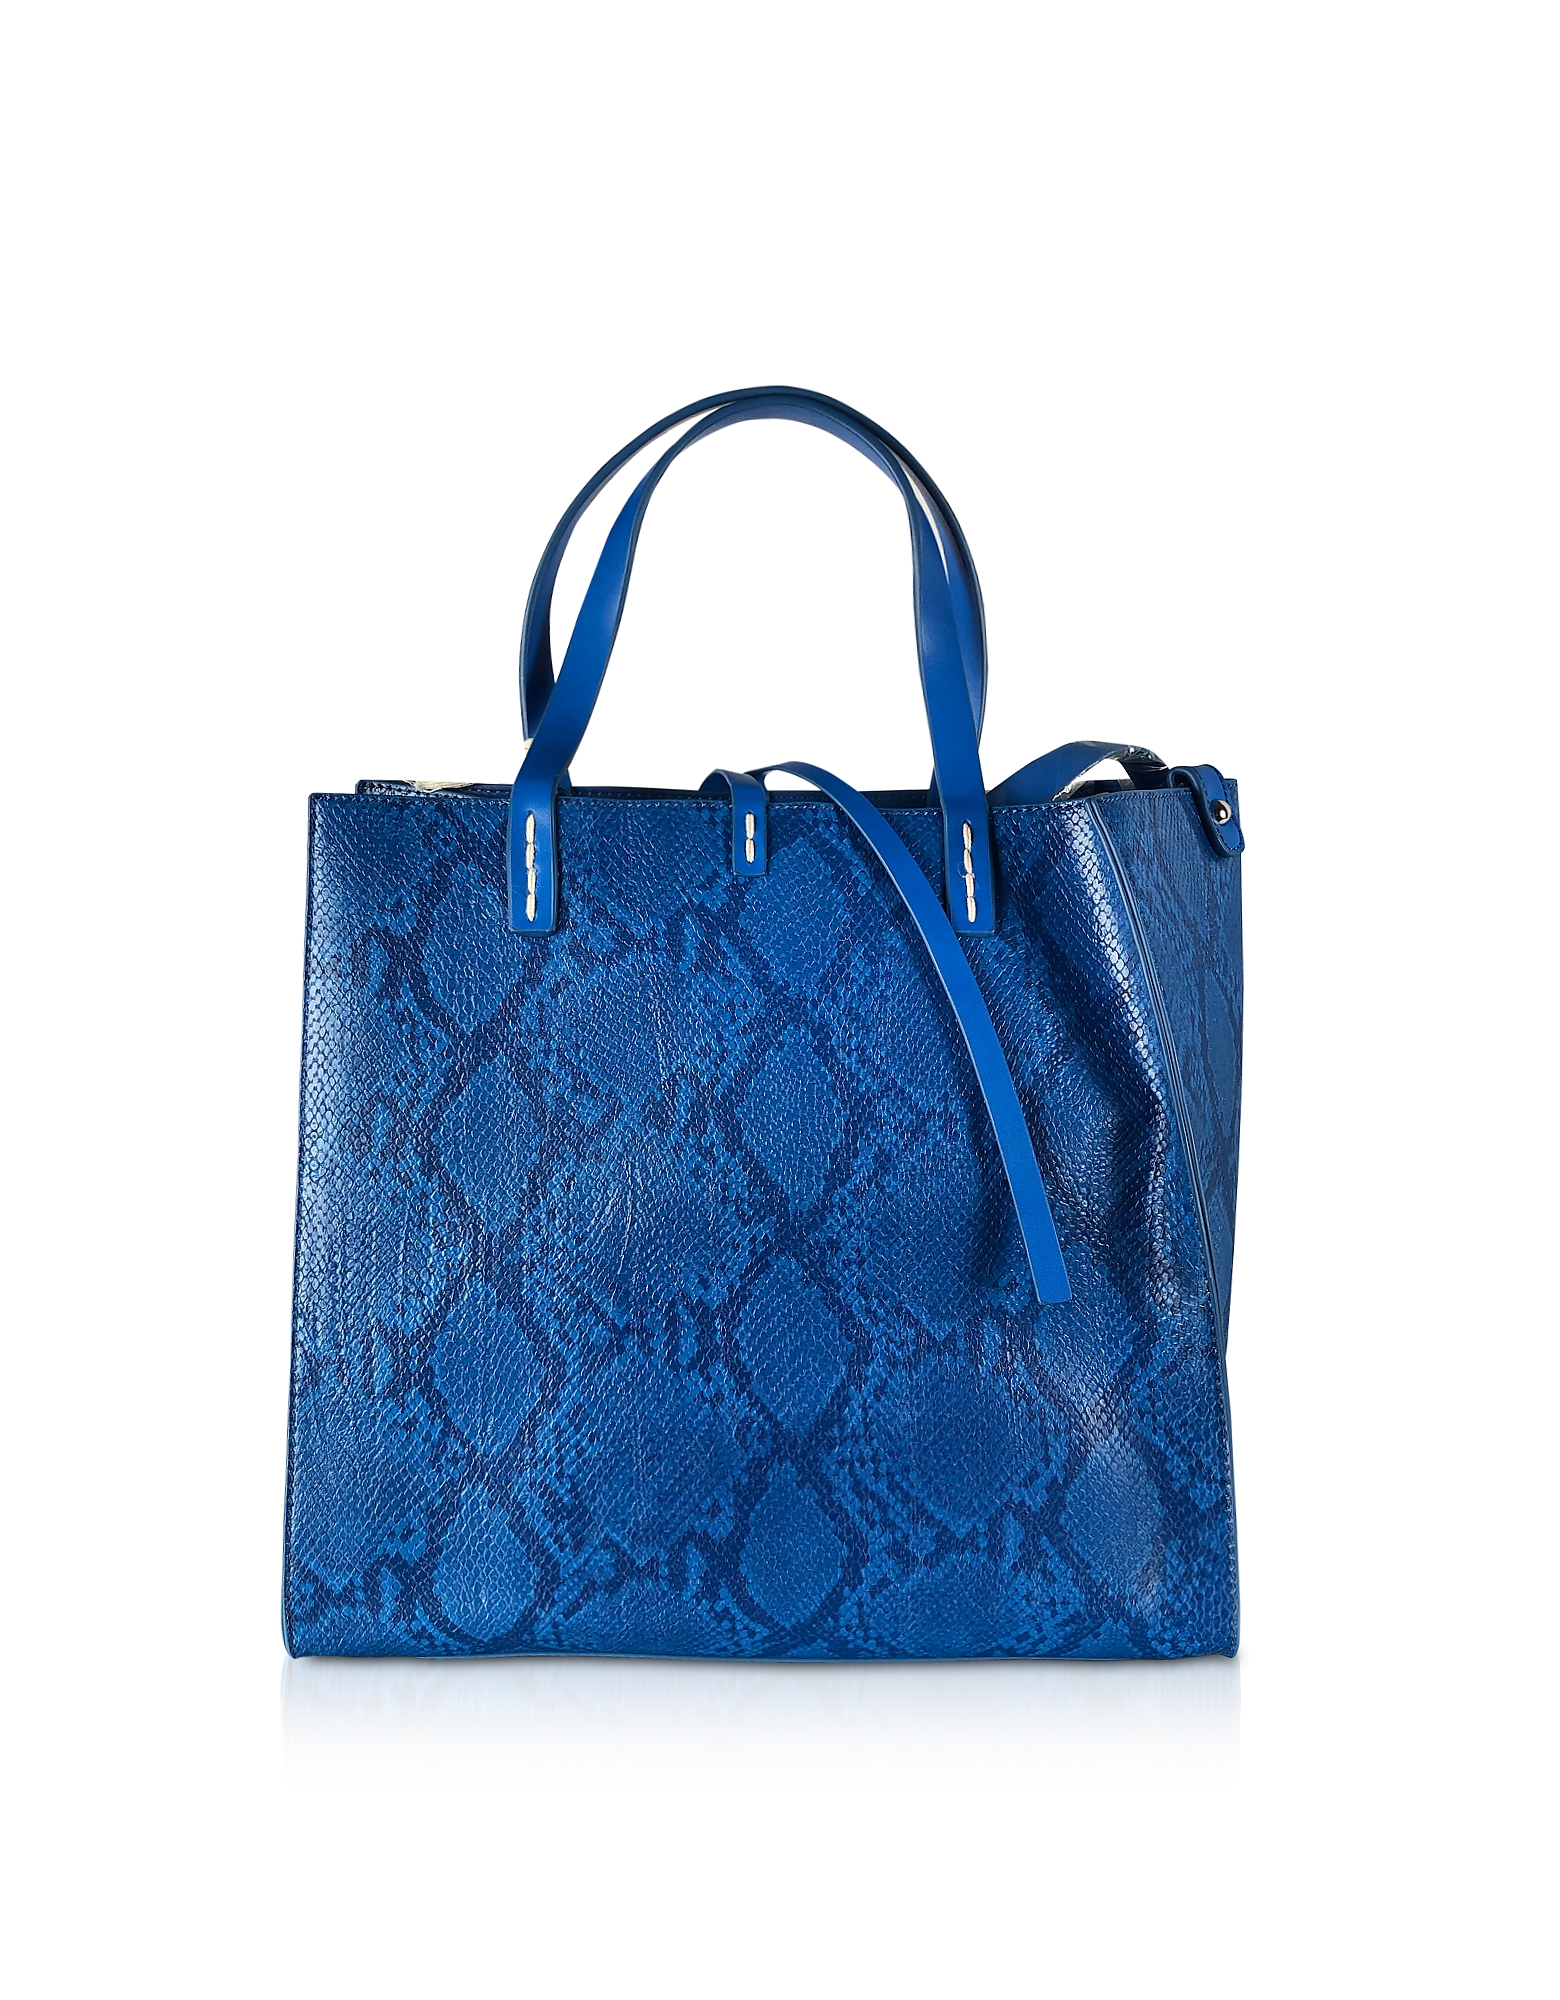 Manila Grace Designer Handbags, Python Embossed Tote Bag